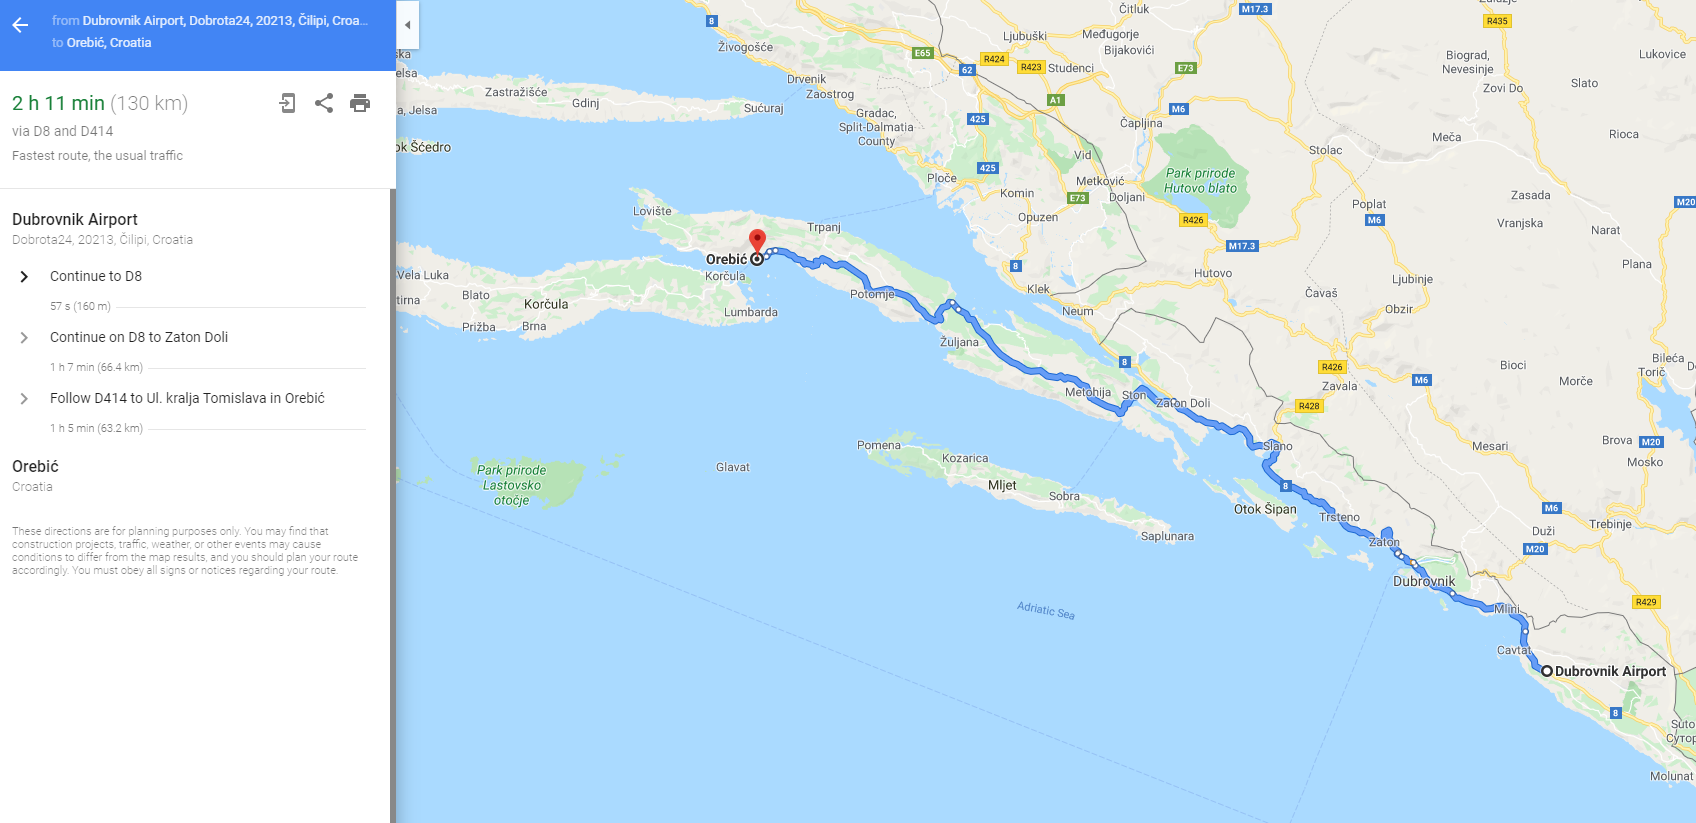 Driving route from Dubrovnik to Orebic on Peljesac peninsula